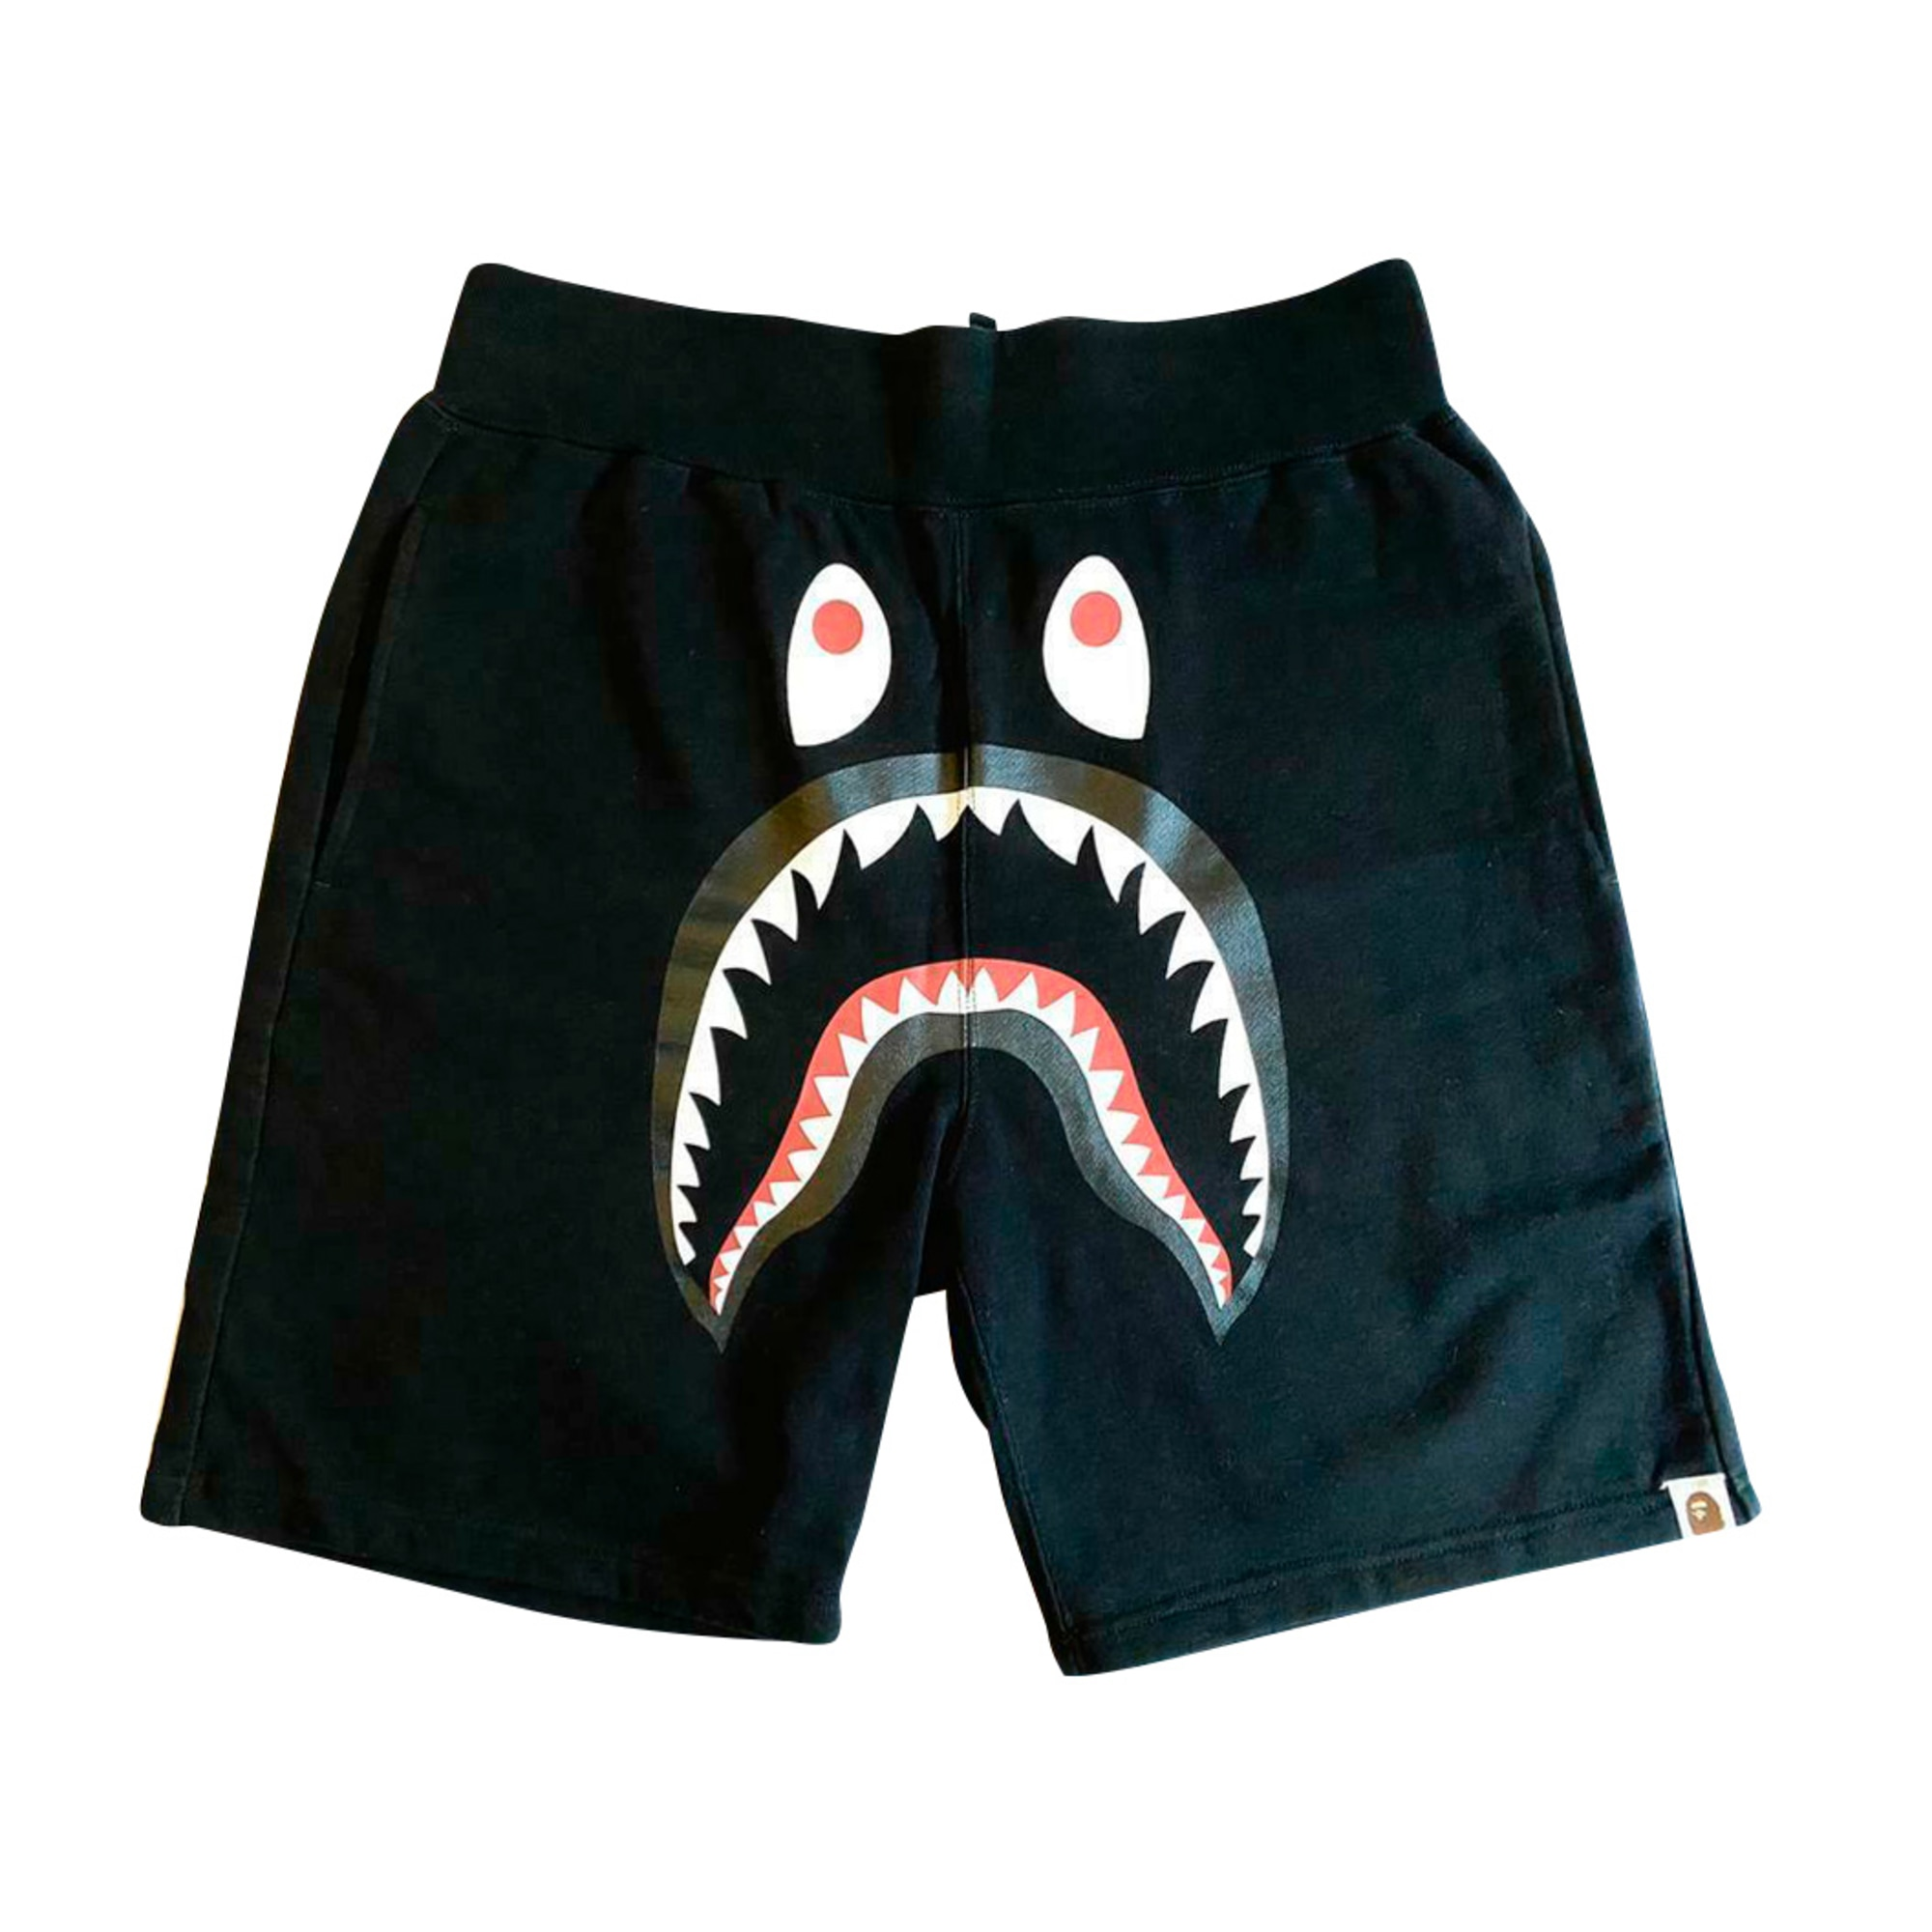 Shorts A BATHING APE Black